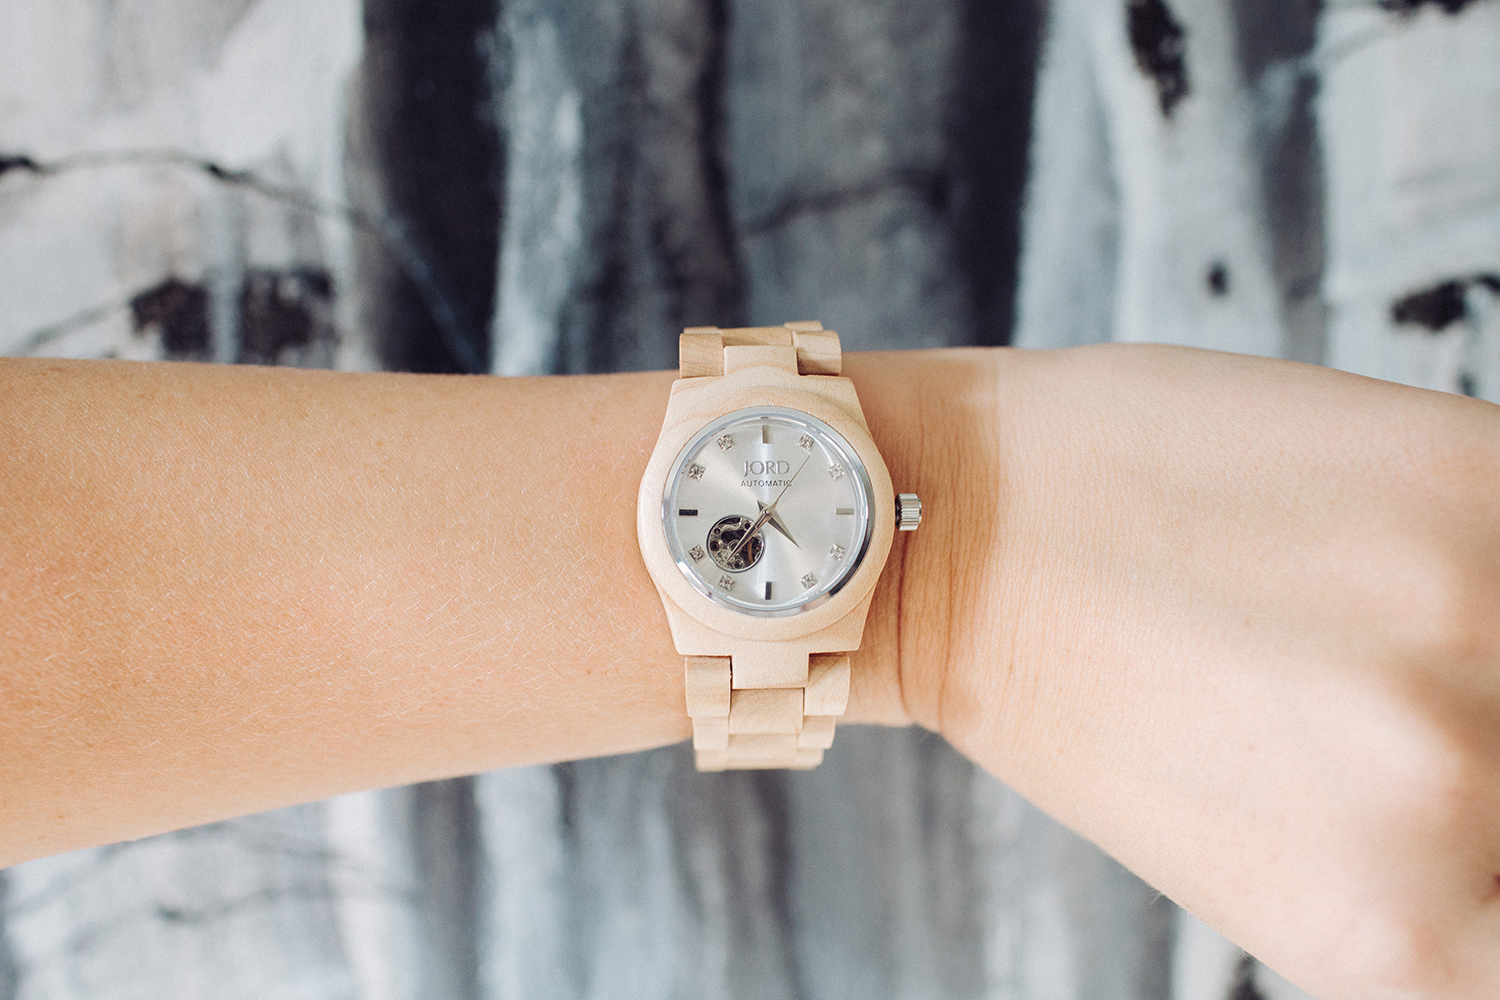 http://www.woodwatches.com/#rennaihoefer